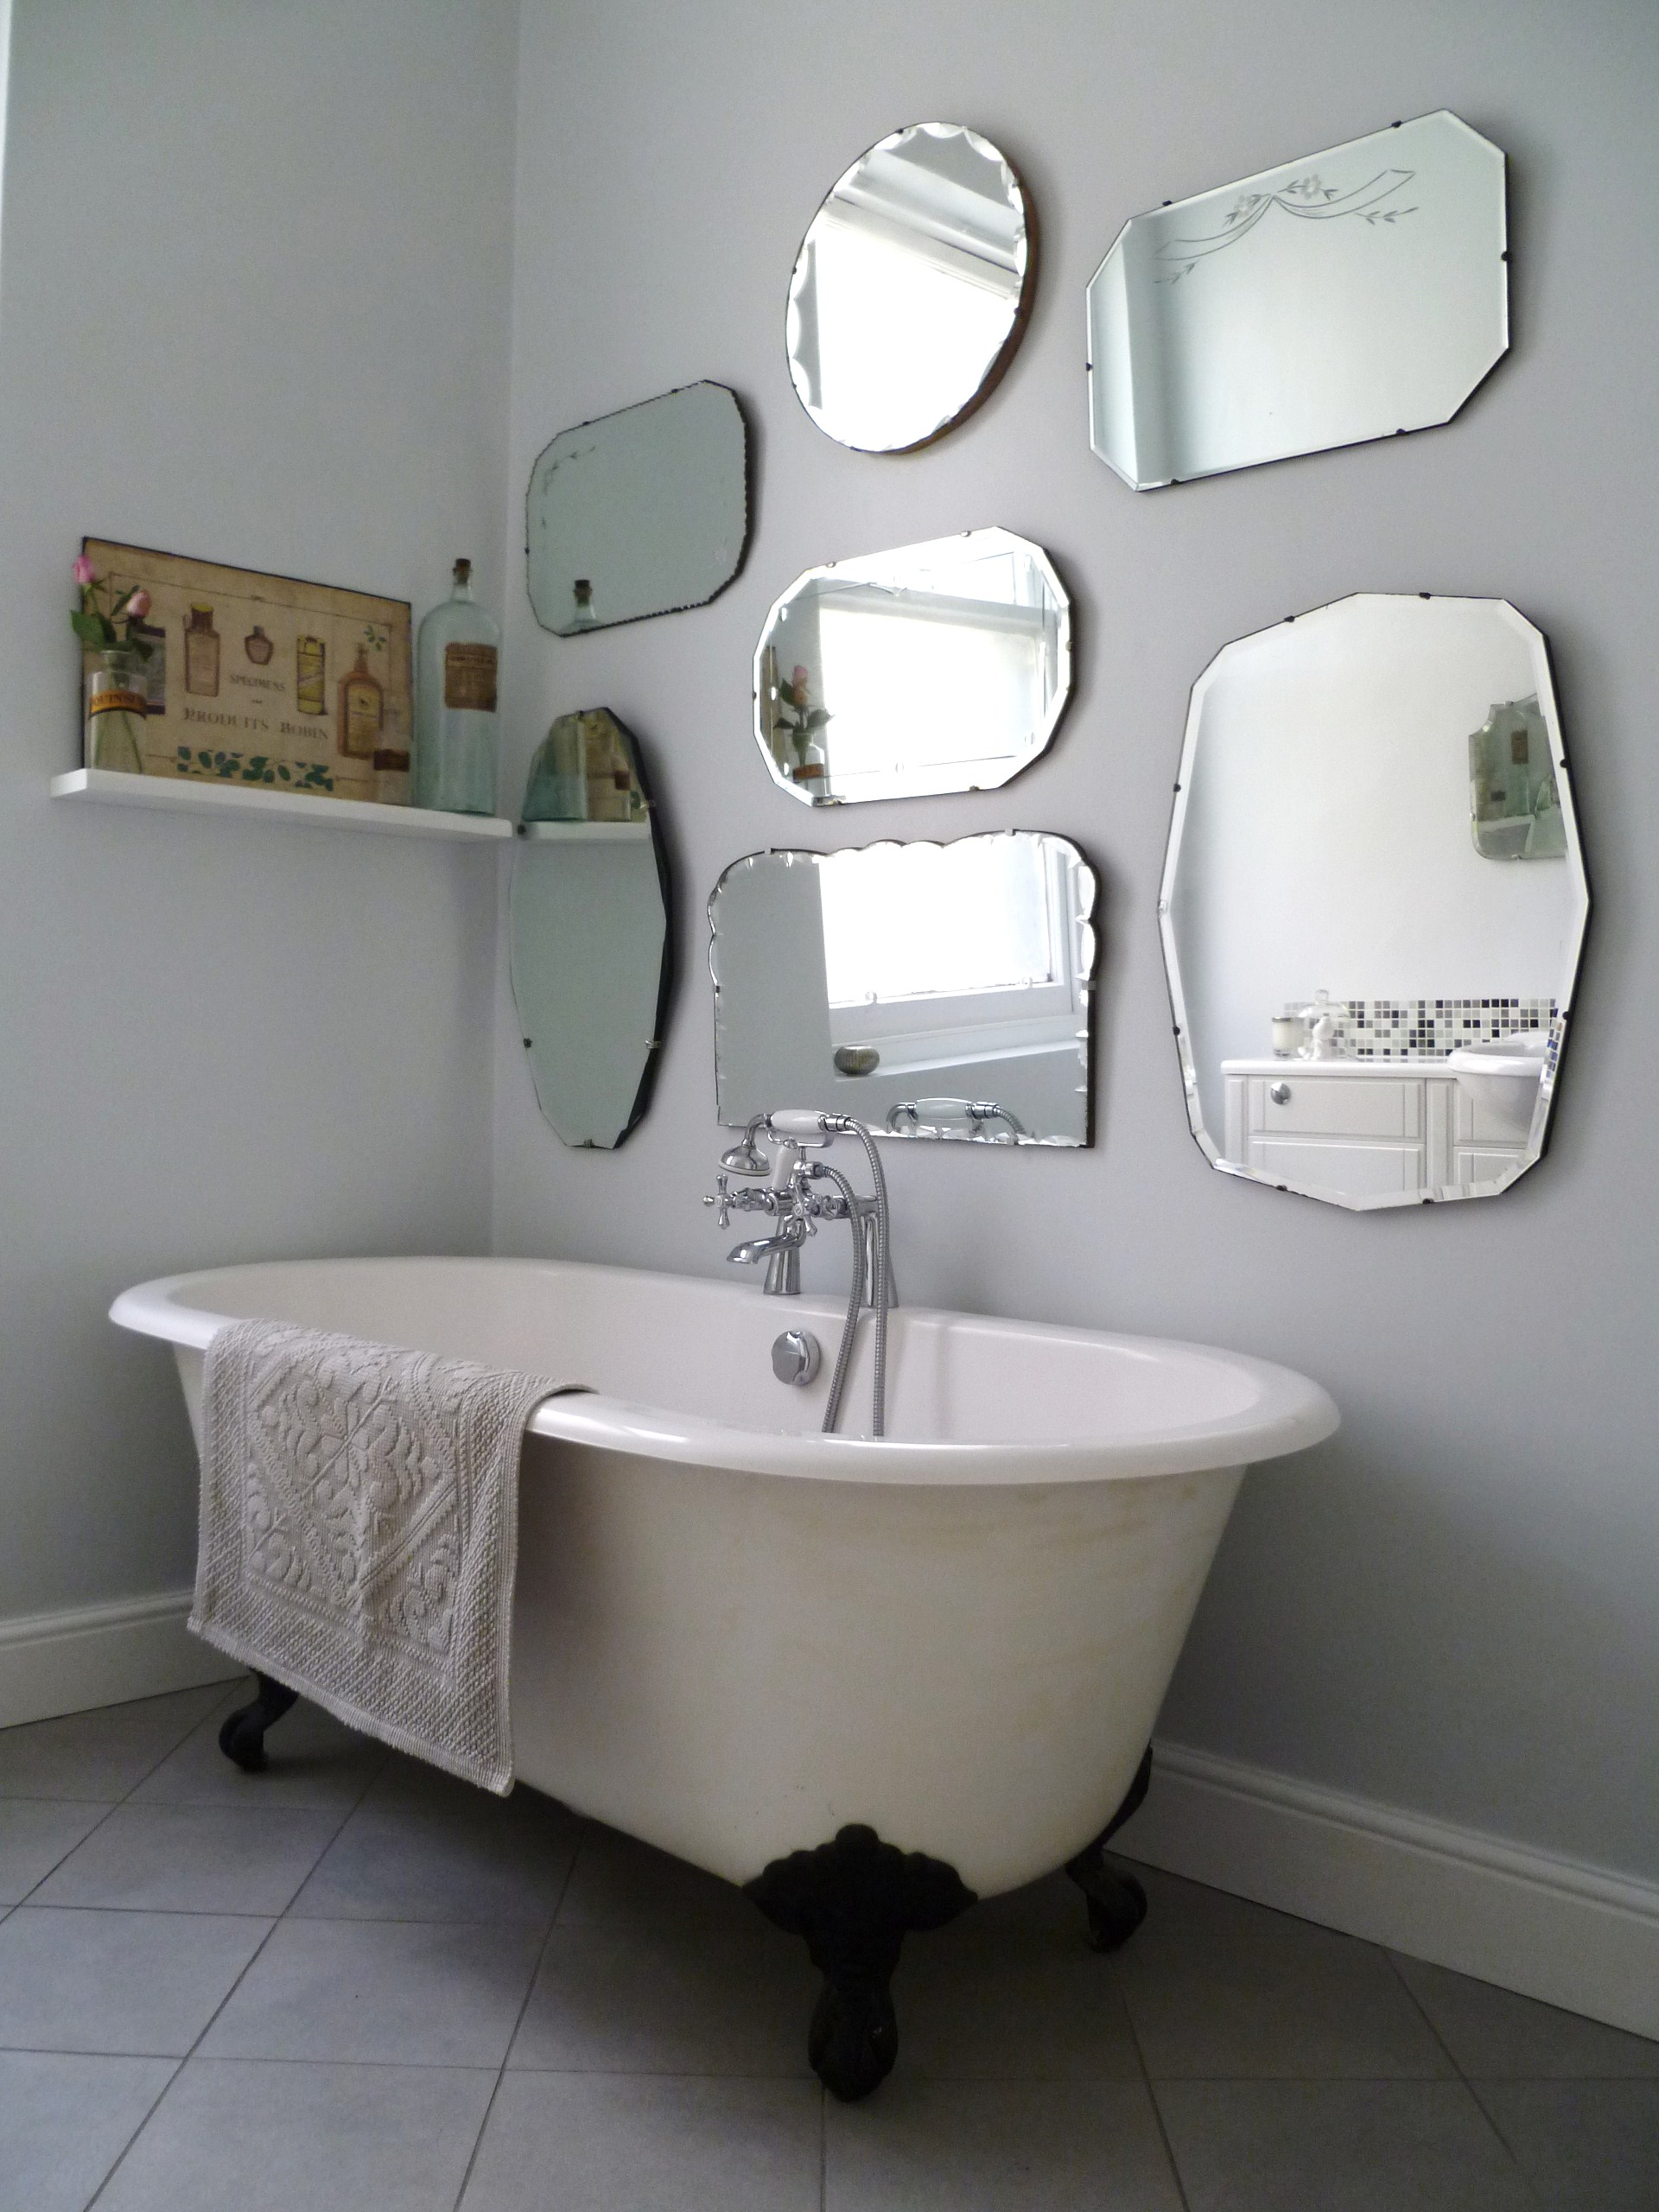 How to hang a display of vintage mirrors decorator 39 s for Bathroom design 1930 s home